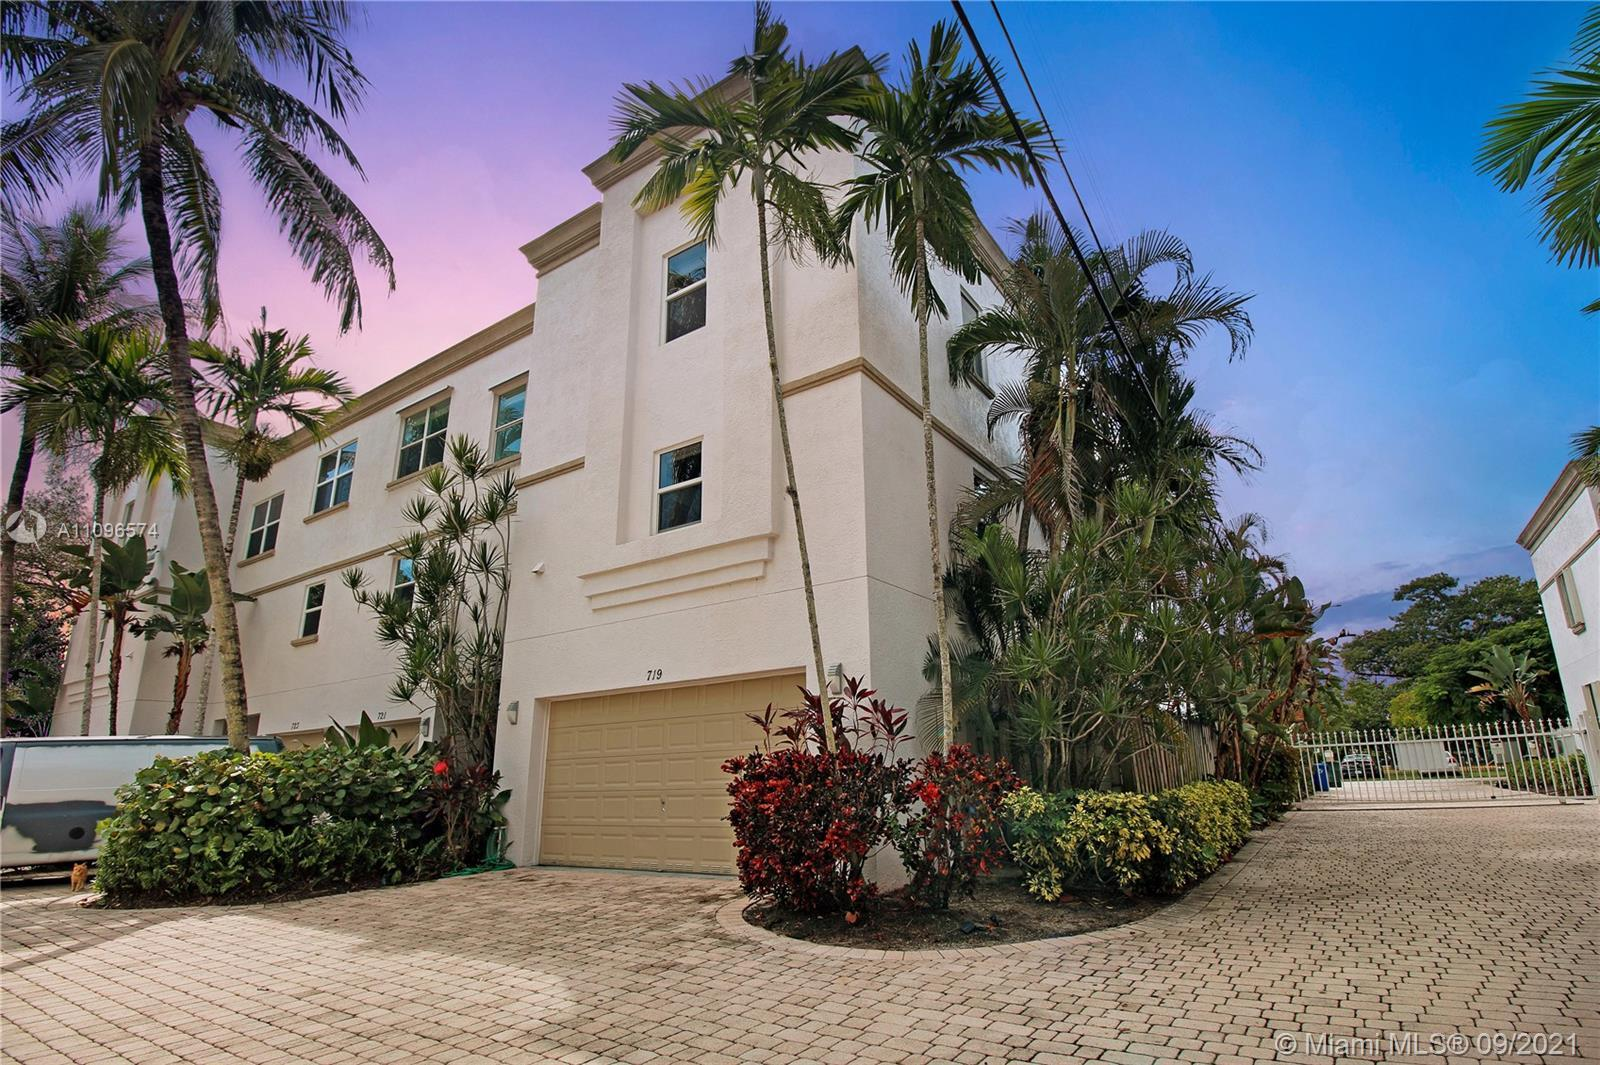 Rarely available spacious 2/2.5 townhome in highly sought after Tarpon River! This beautiful corner